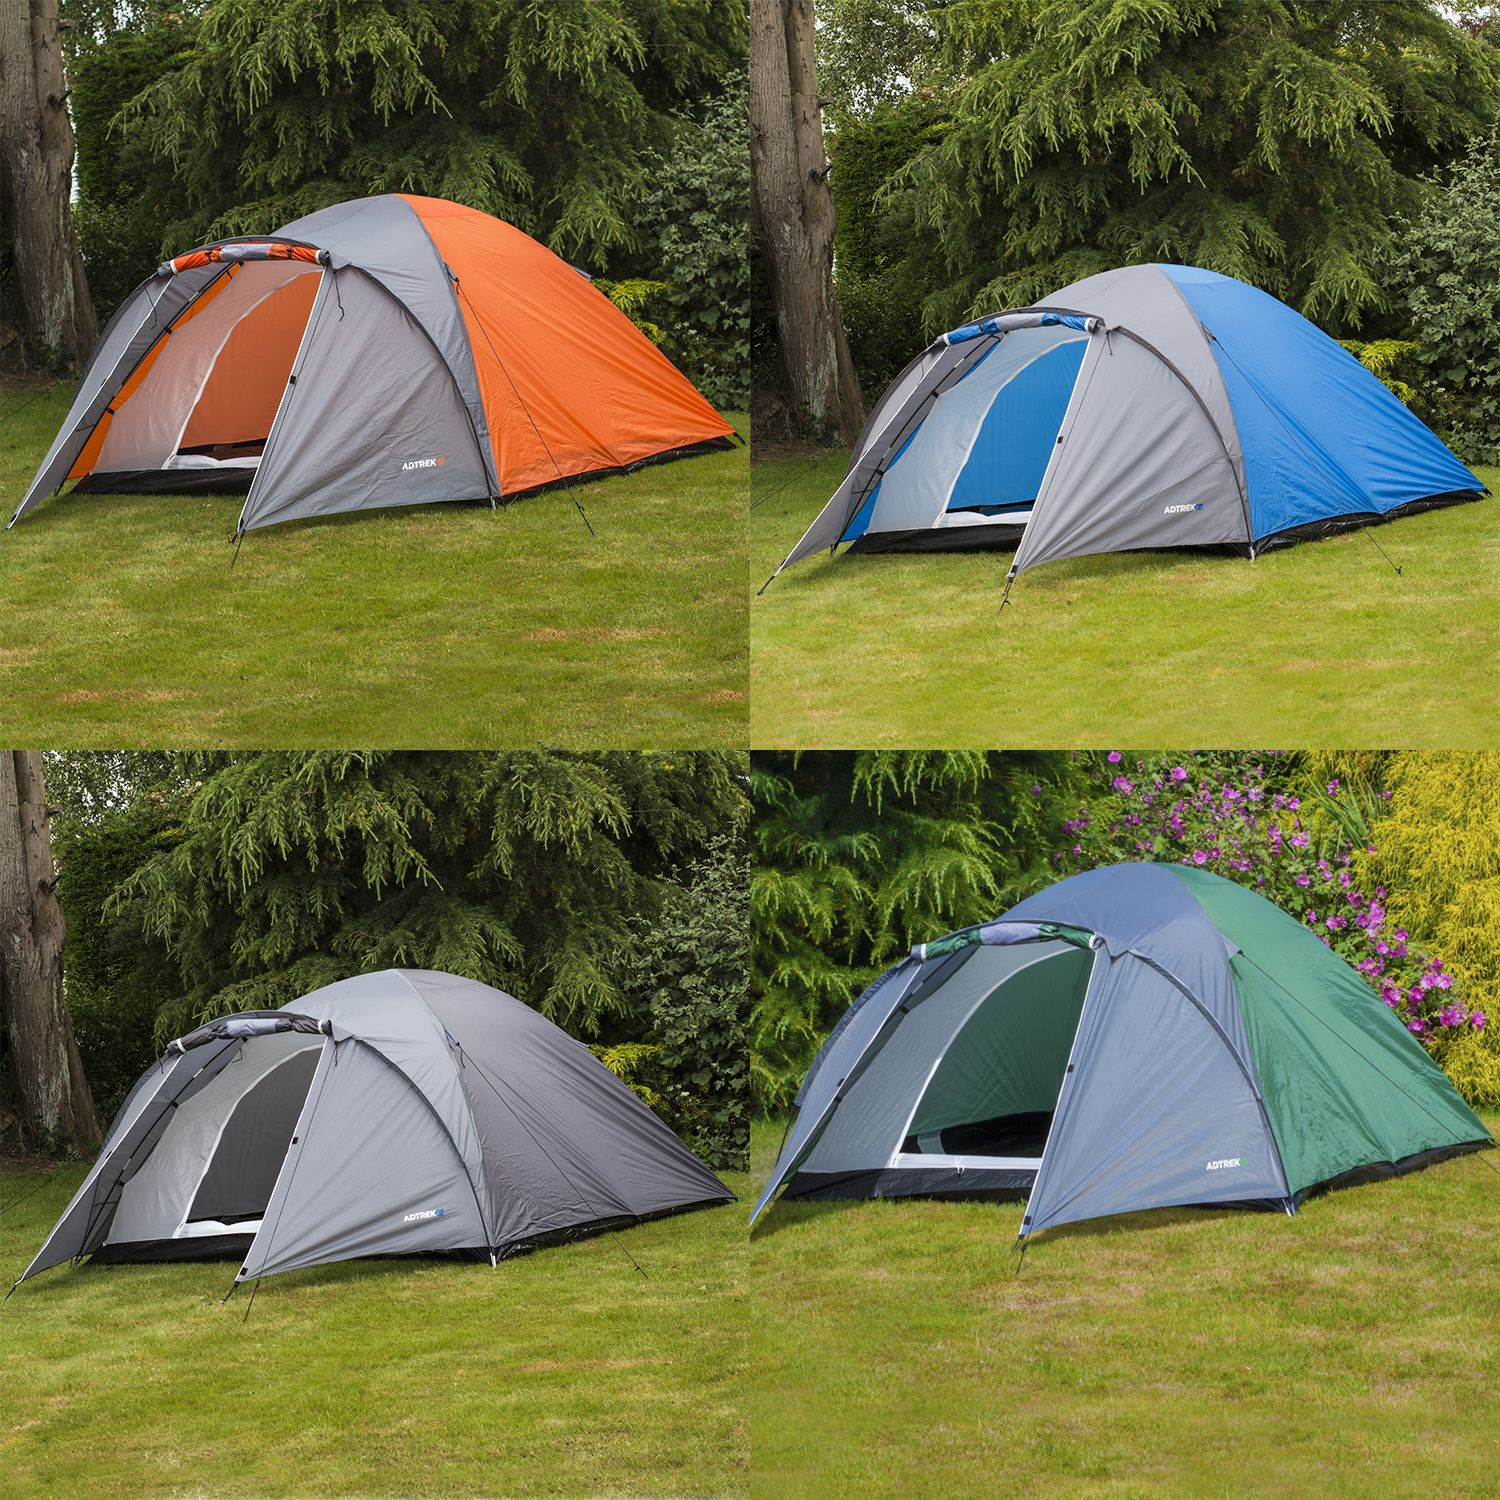 Adtrek 4 Person Tent | Tents u0026 Awnings | Outdoor Value & Adtrek 4 Person Tent | Tents u0026 Awnings | Outdoor Value | boomtown ...